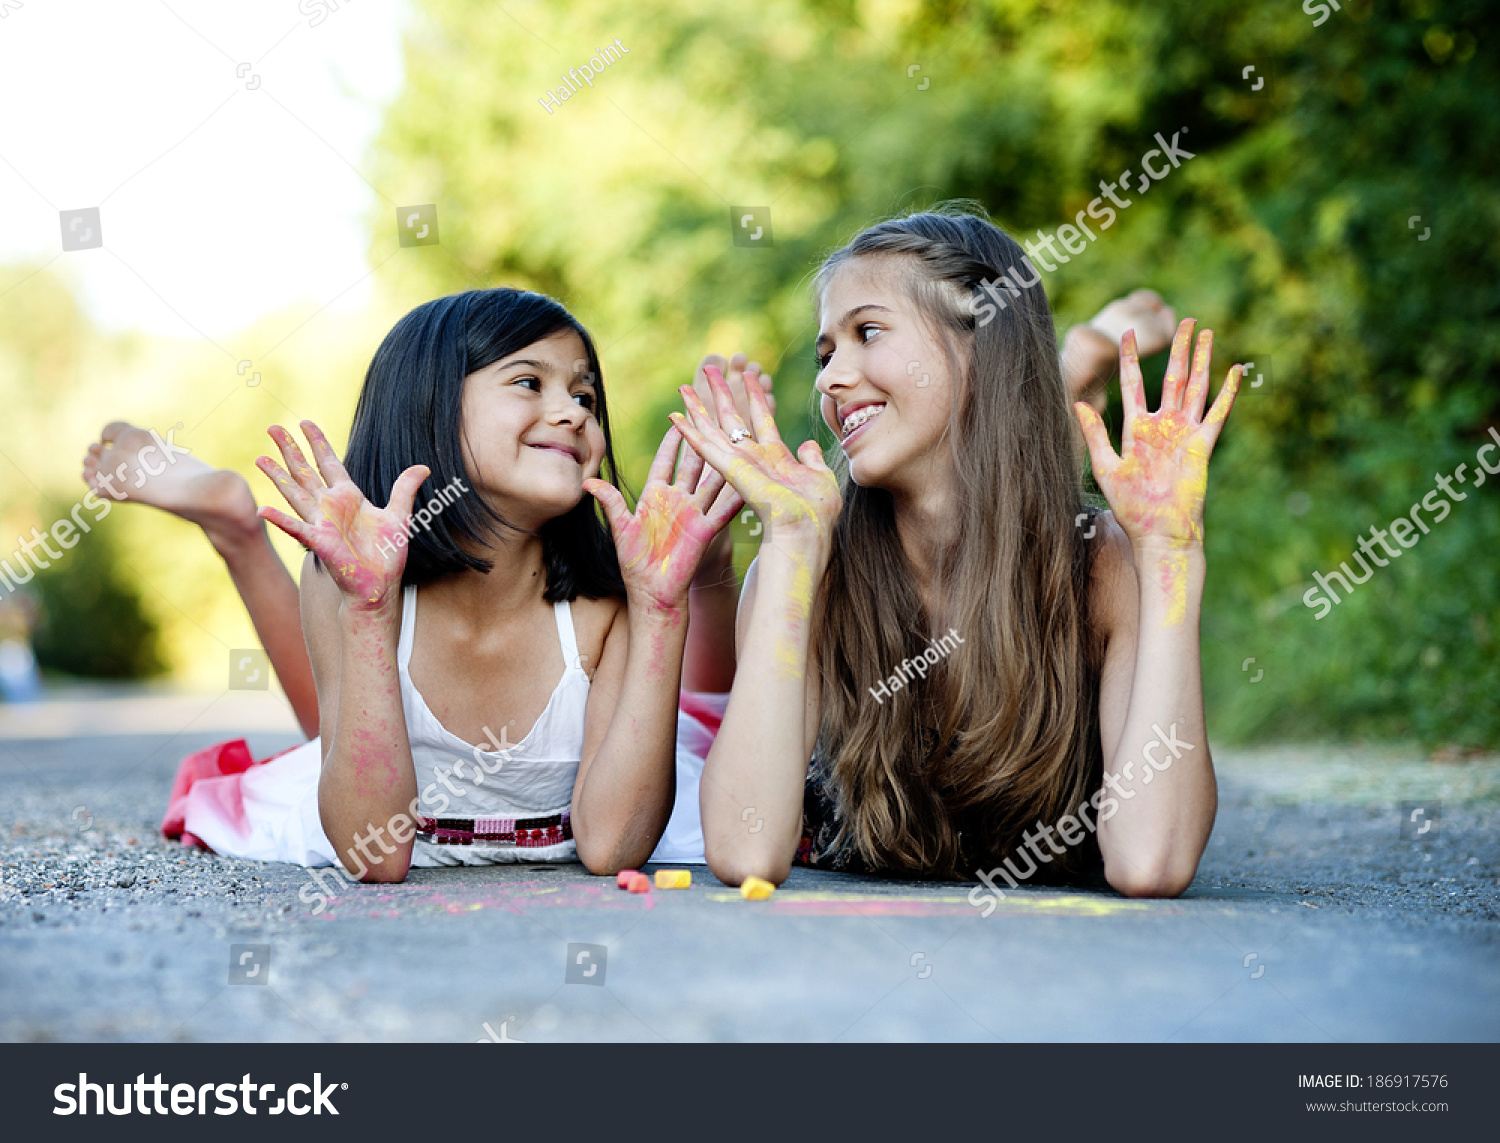 https://image.shutterstock.com/shutterstock/photos/186917576/display_1500/stock-photo-two-sisters-laughing-and-playing-with-chalks-on-pavement-in-green-sunny-park-186917576.jpg